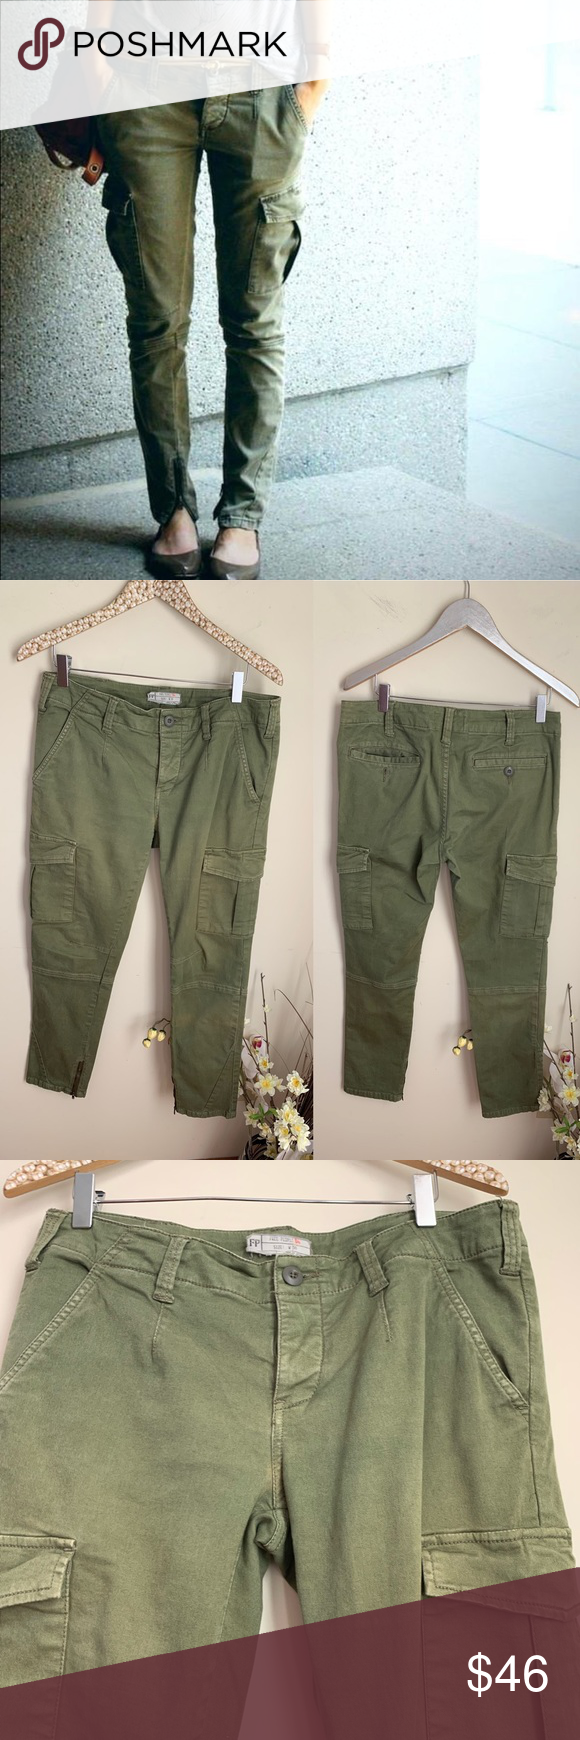 Free People Olive Green Skinny Cargo Military Pant Olive Green Cargo Pants Military Pants Green Cargo Pants